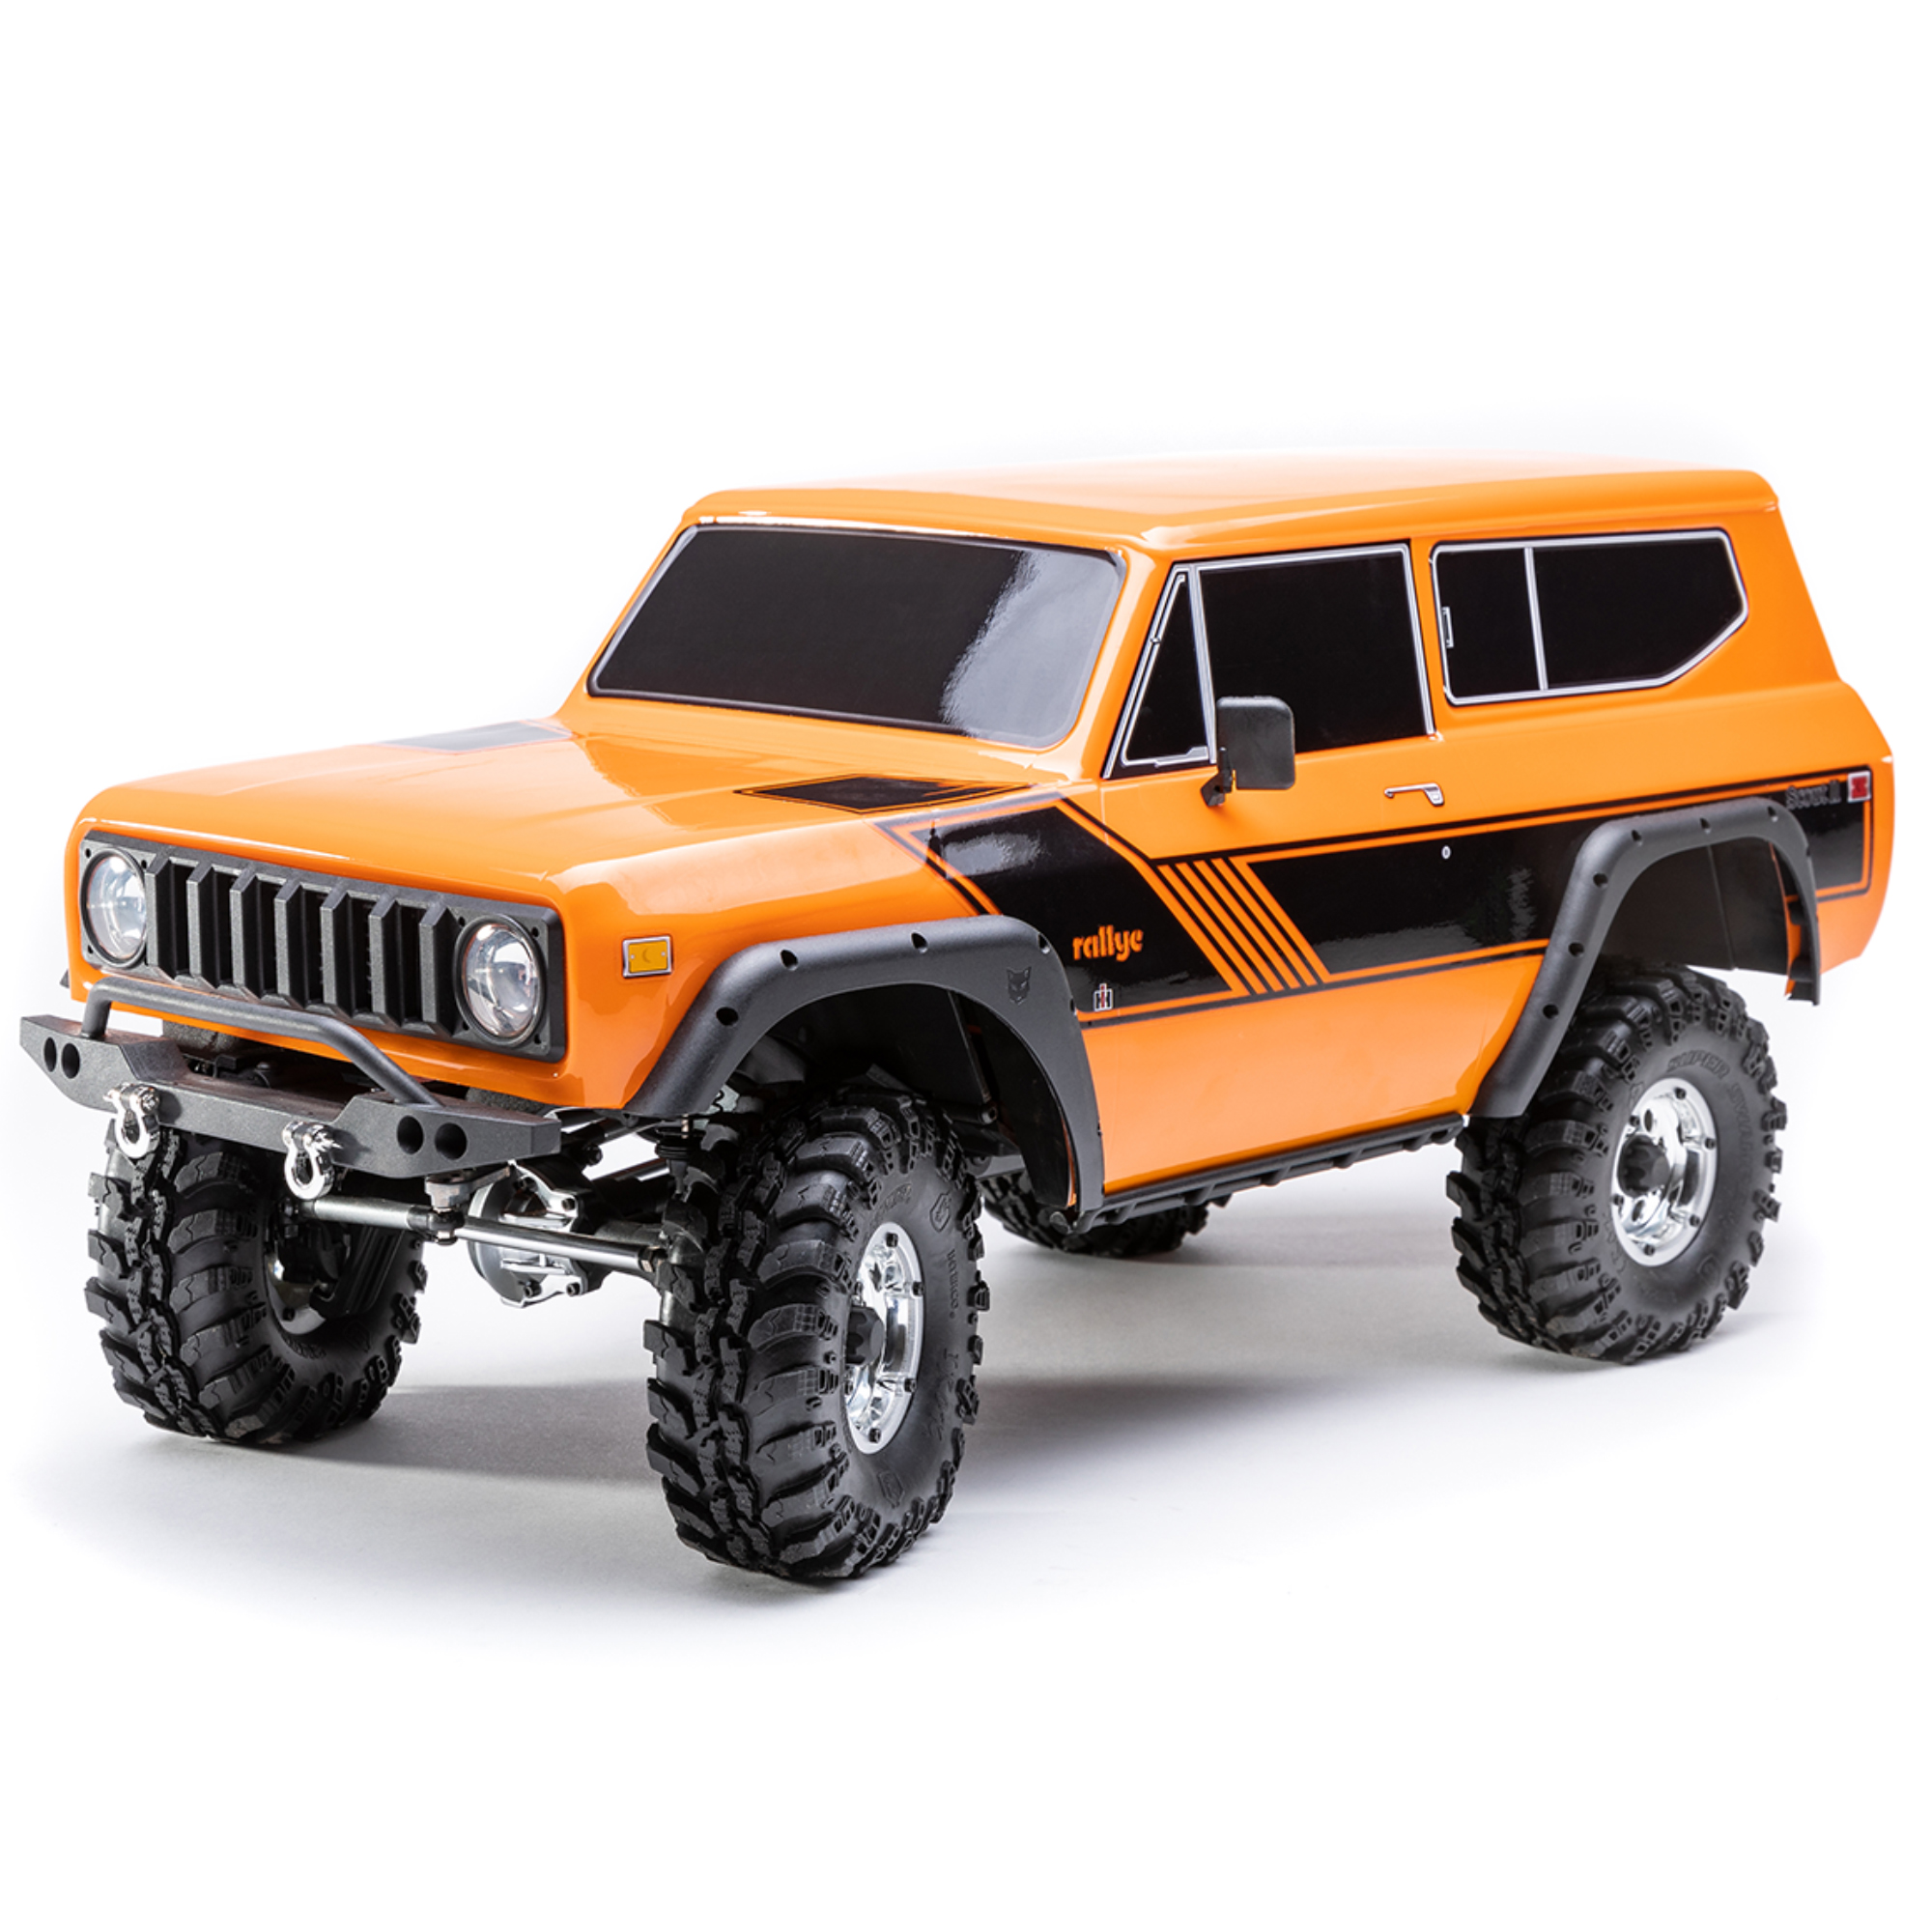 RedCat 11291 - Gen 8 International Scout II 1/10 4WD RTR Orange